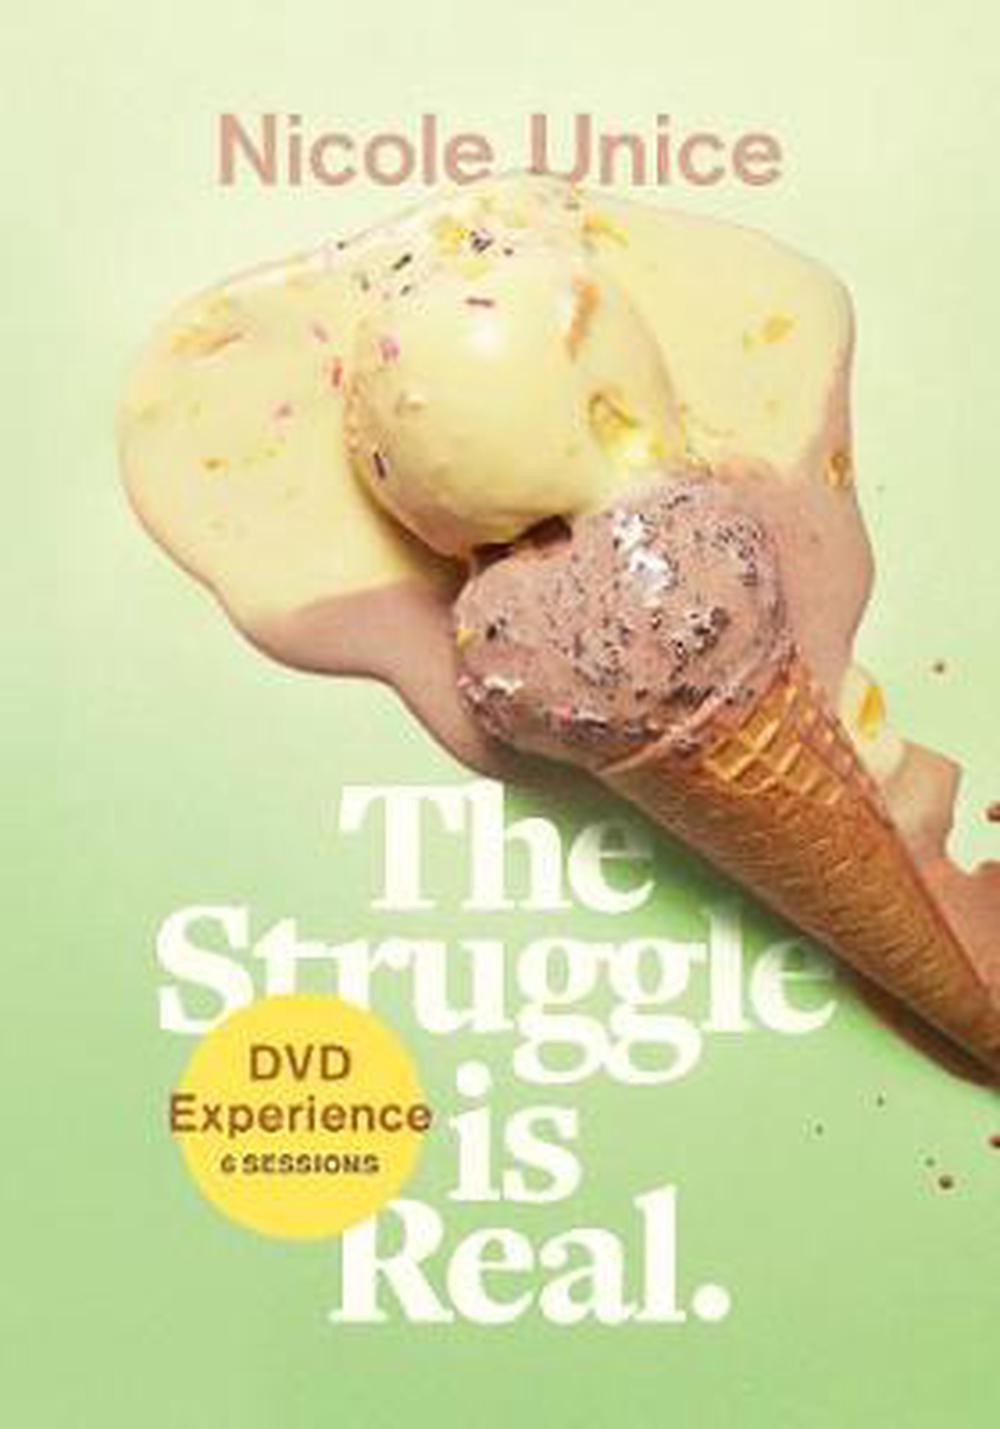 Struggle Is Real Dvd Experience, the